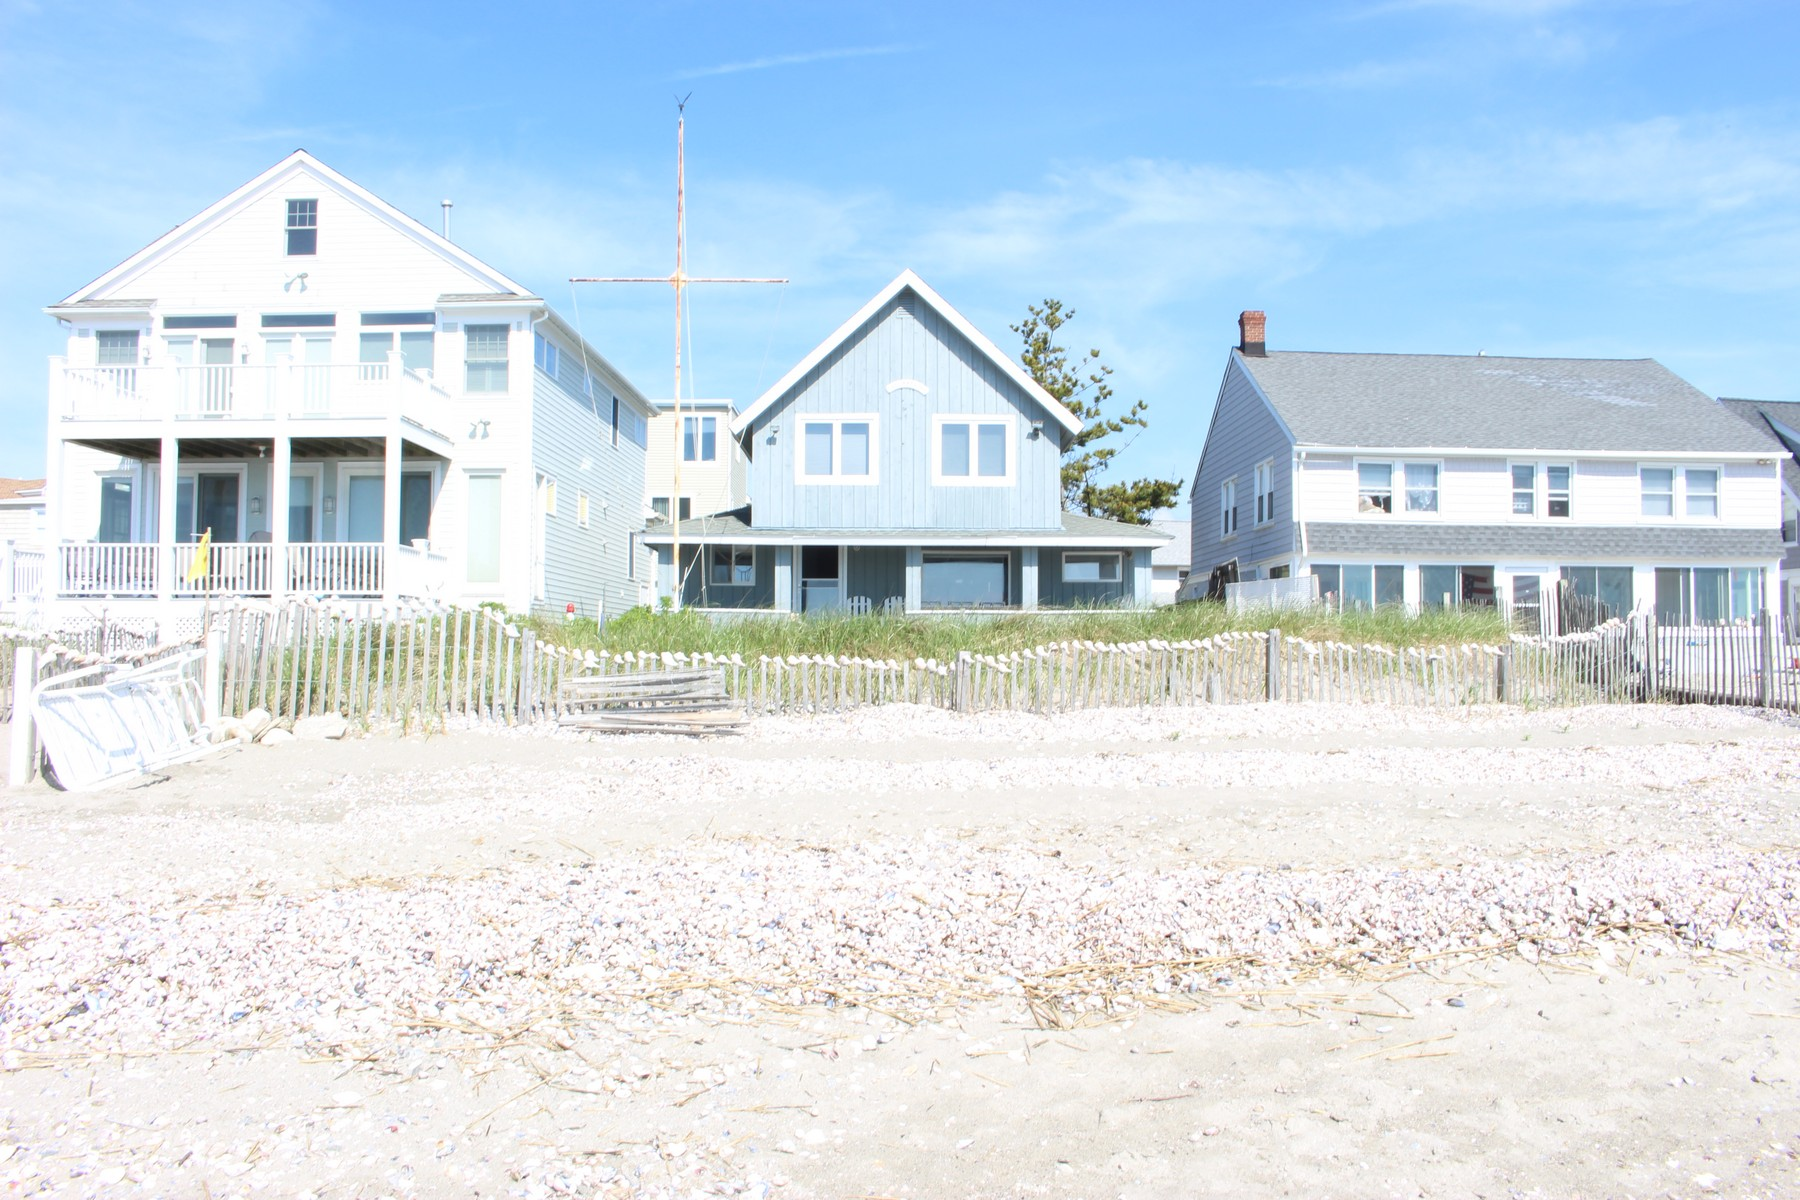 Single Family Home for Sale at Premier Beachfront Retreat 26 Lighthouse Point Fairfield, Connecticut, 06824 United States